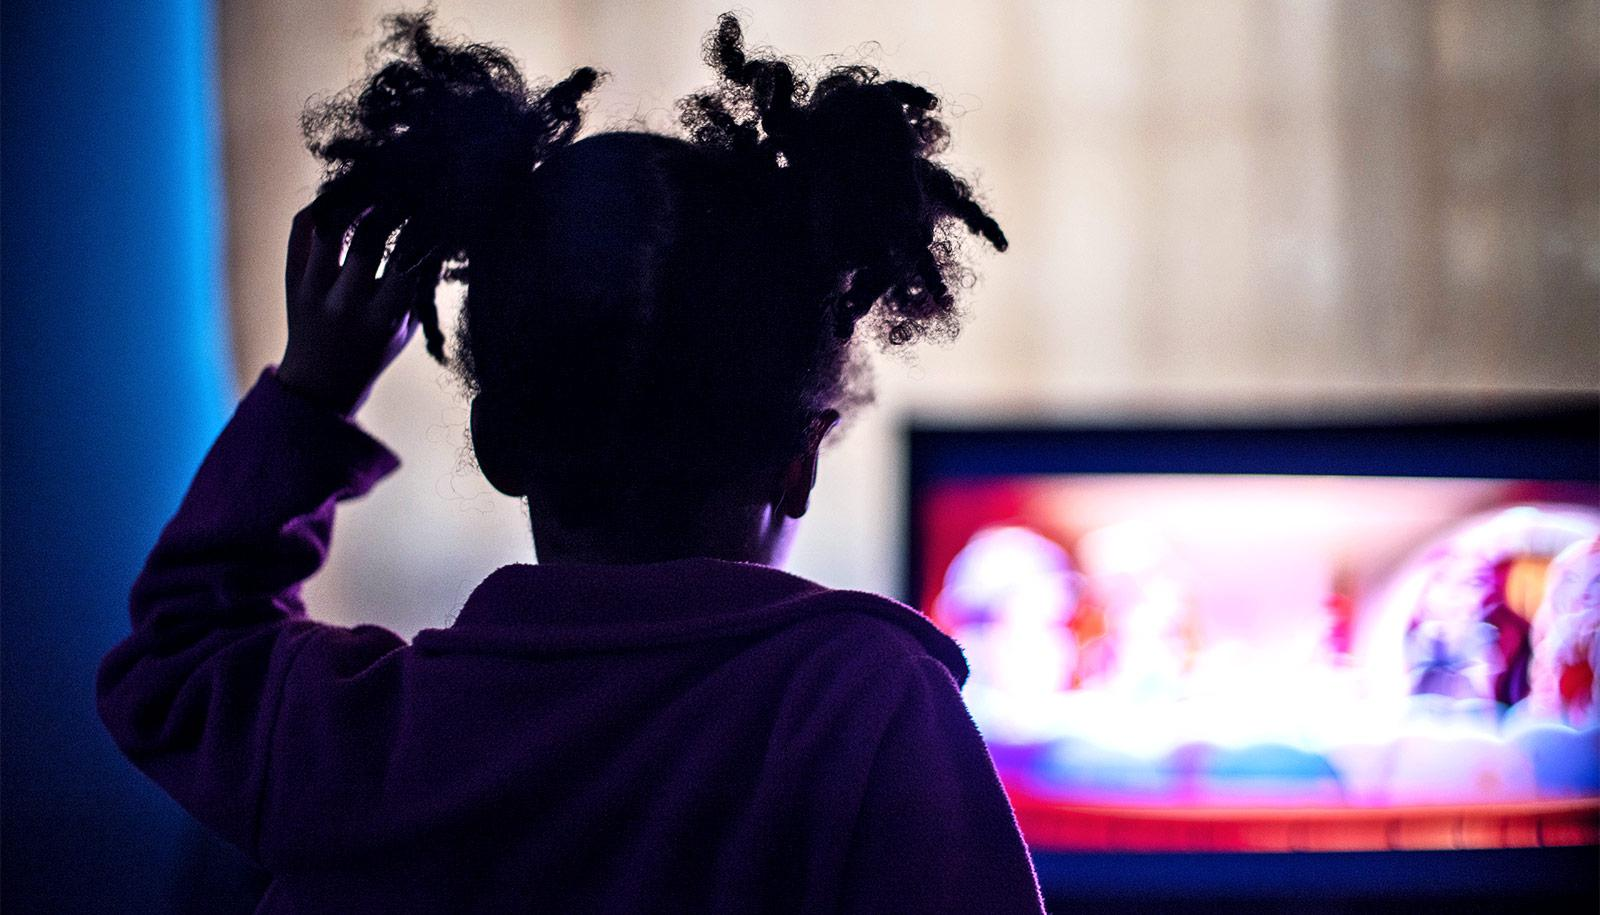 A young girl watches TV